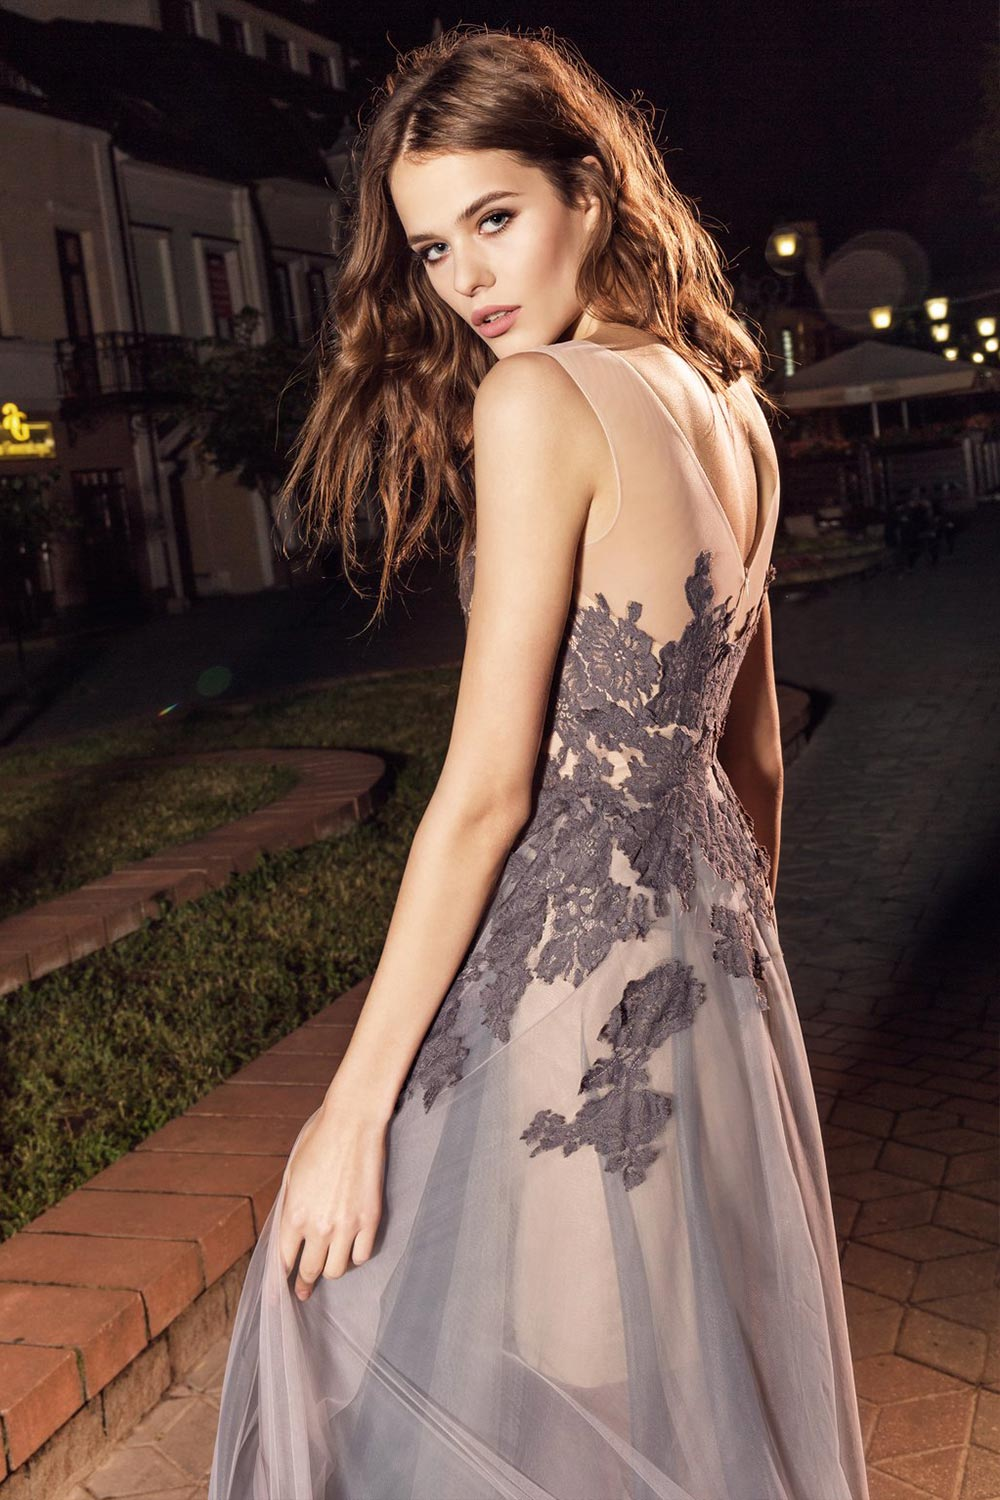 2019 prom, sleeveless illusion neckline evening gown with lace embroidery and tulle overlay skirt on top of the short lining skirt, available in ivory, ivory on nude lining, black, brown-pink